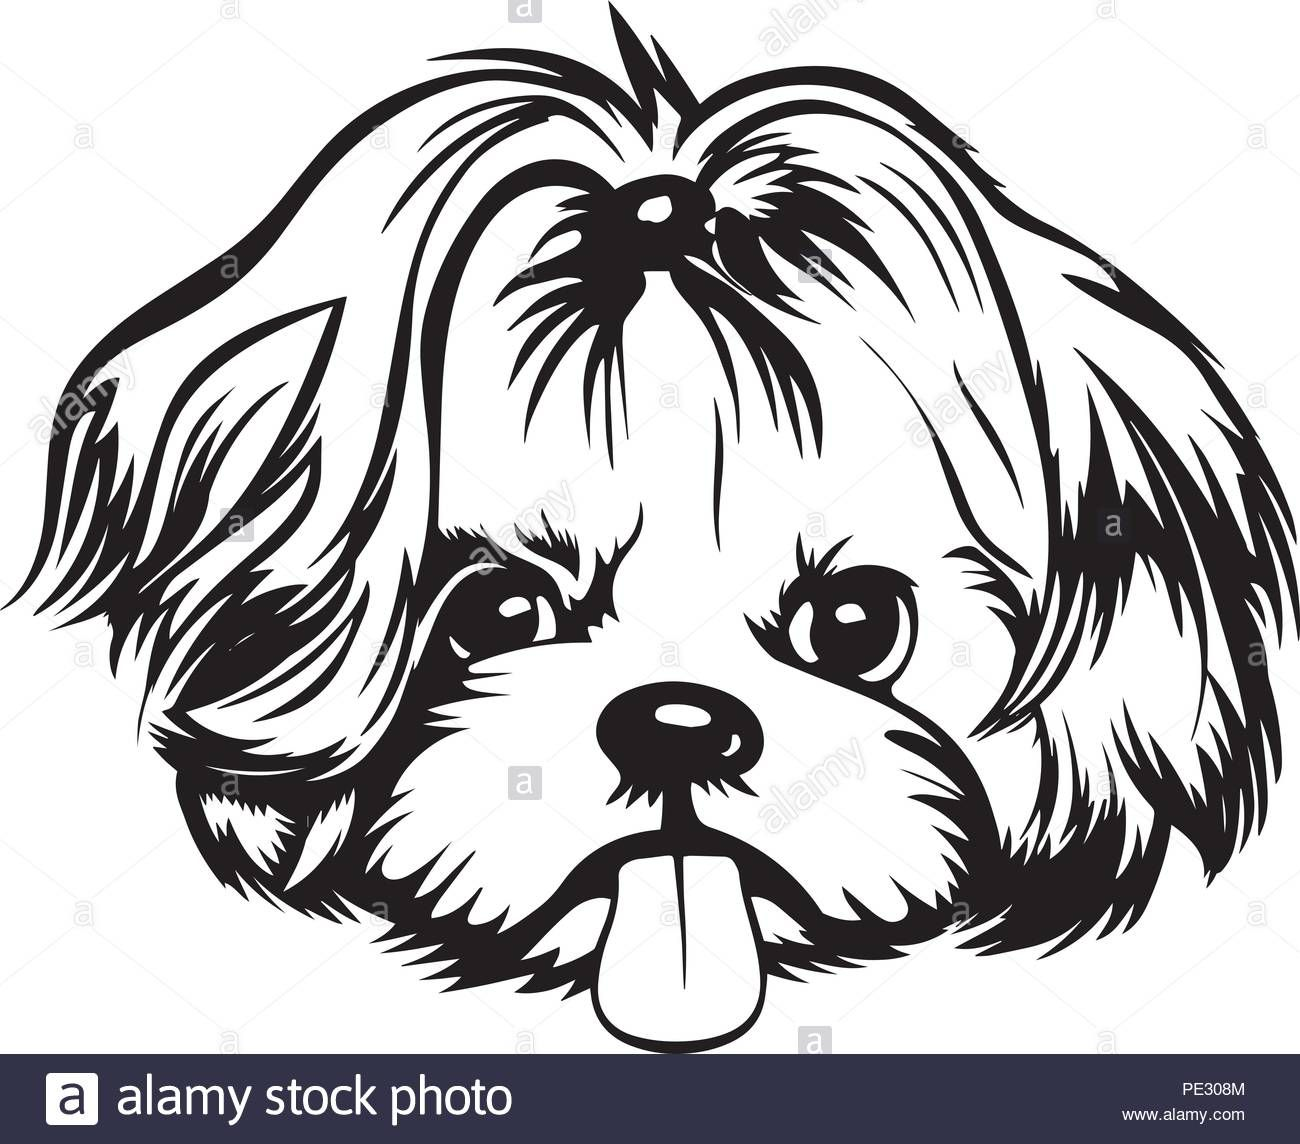 Download This Stock Vector Shih Tzu Dog Breed Pet Puppy Isolated Head Face Pe308m From Alamy S Library Of Millions Of In 2021 Shih Tzu Puppy Shih Tzu Dog Puppy Art